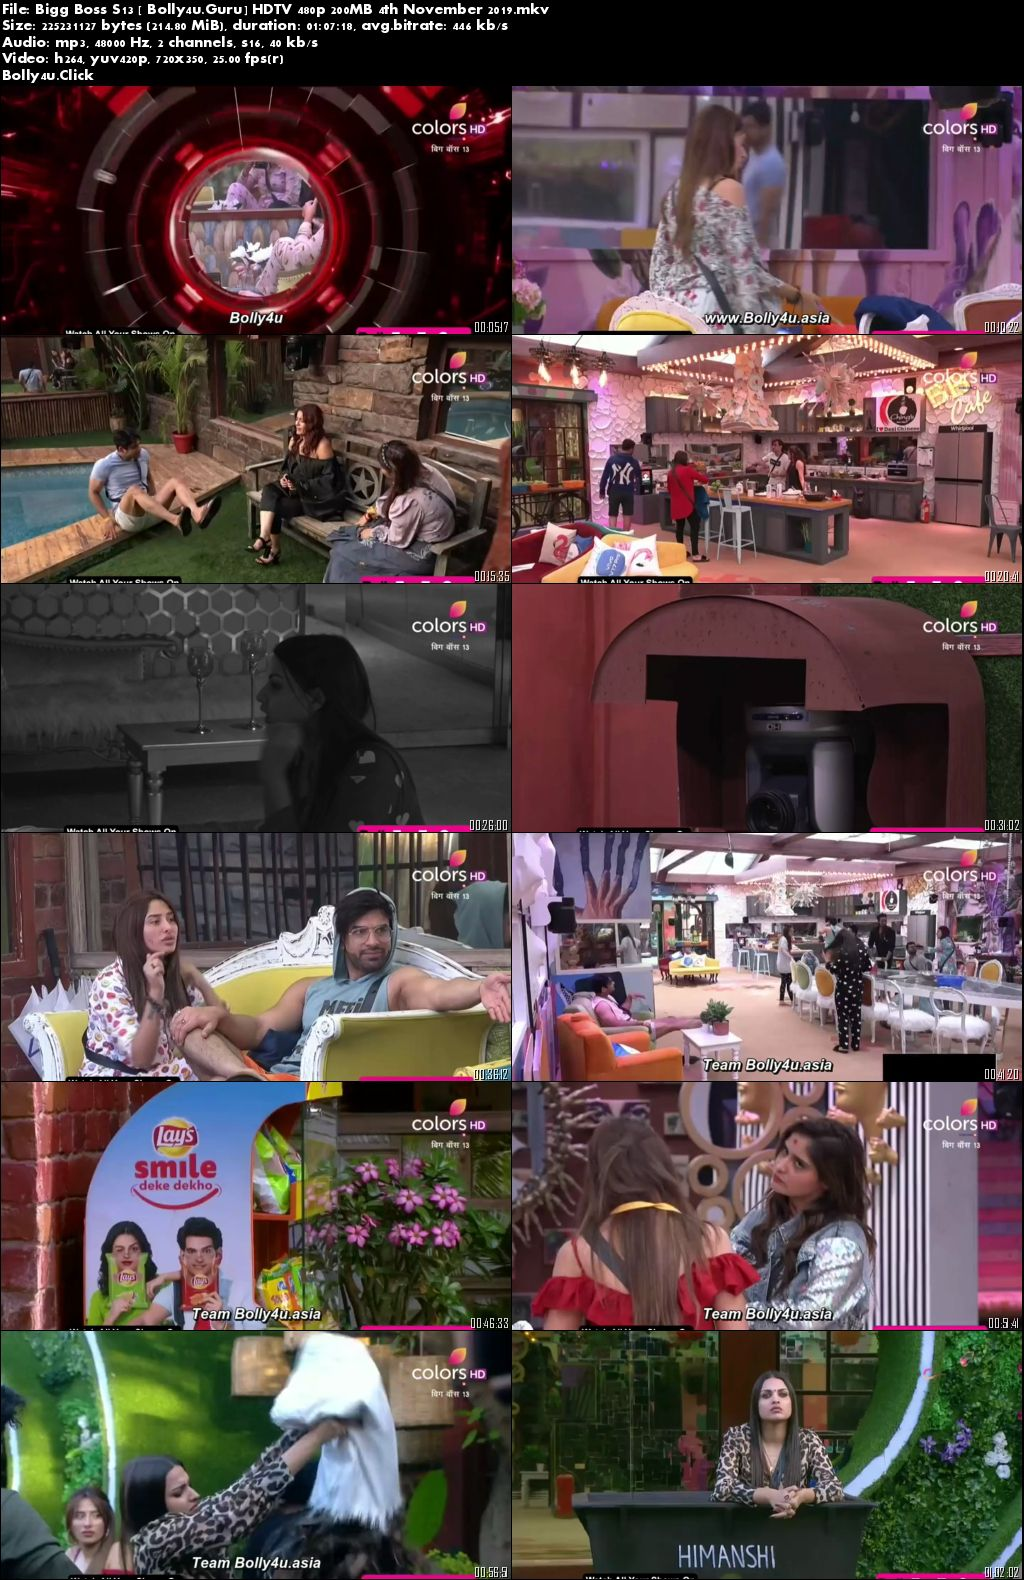 Bigg Boss S13 HDTV 480p 200MB 04 November 2019 Download